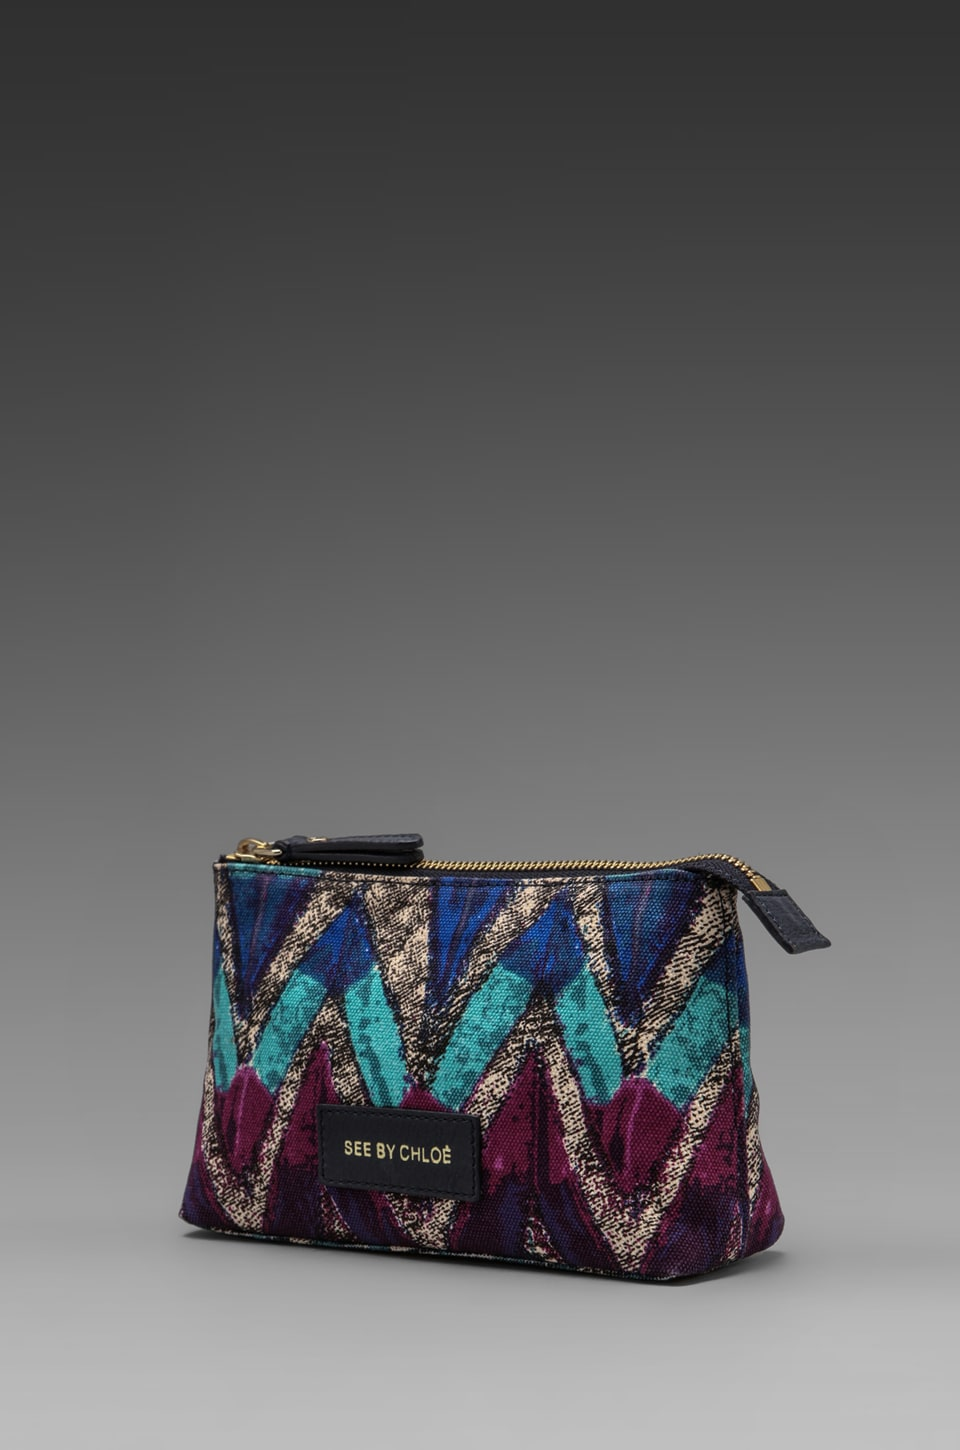 See By Chloe Agathe Cosmetic Pouch in Mint Pheonix Print